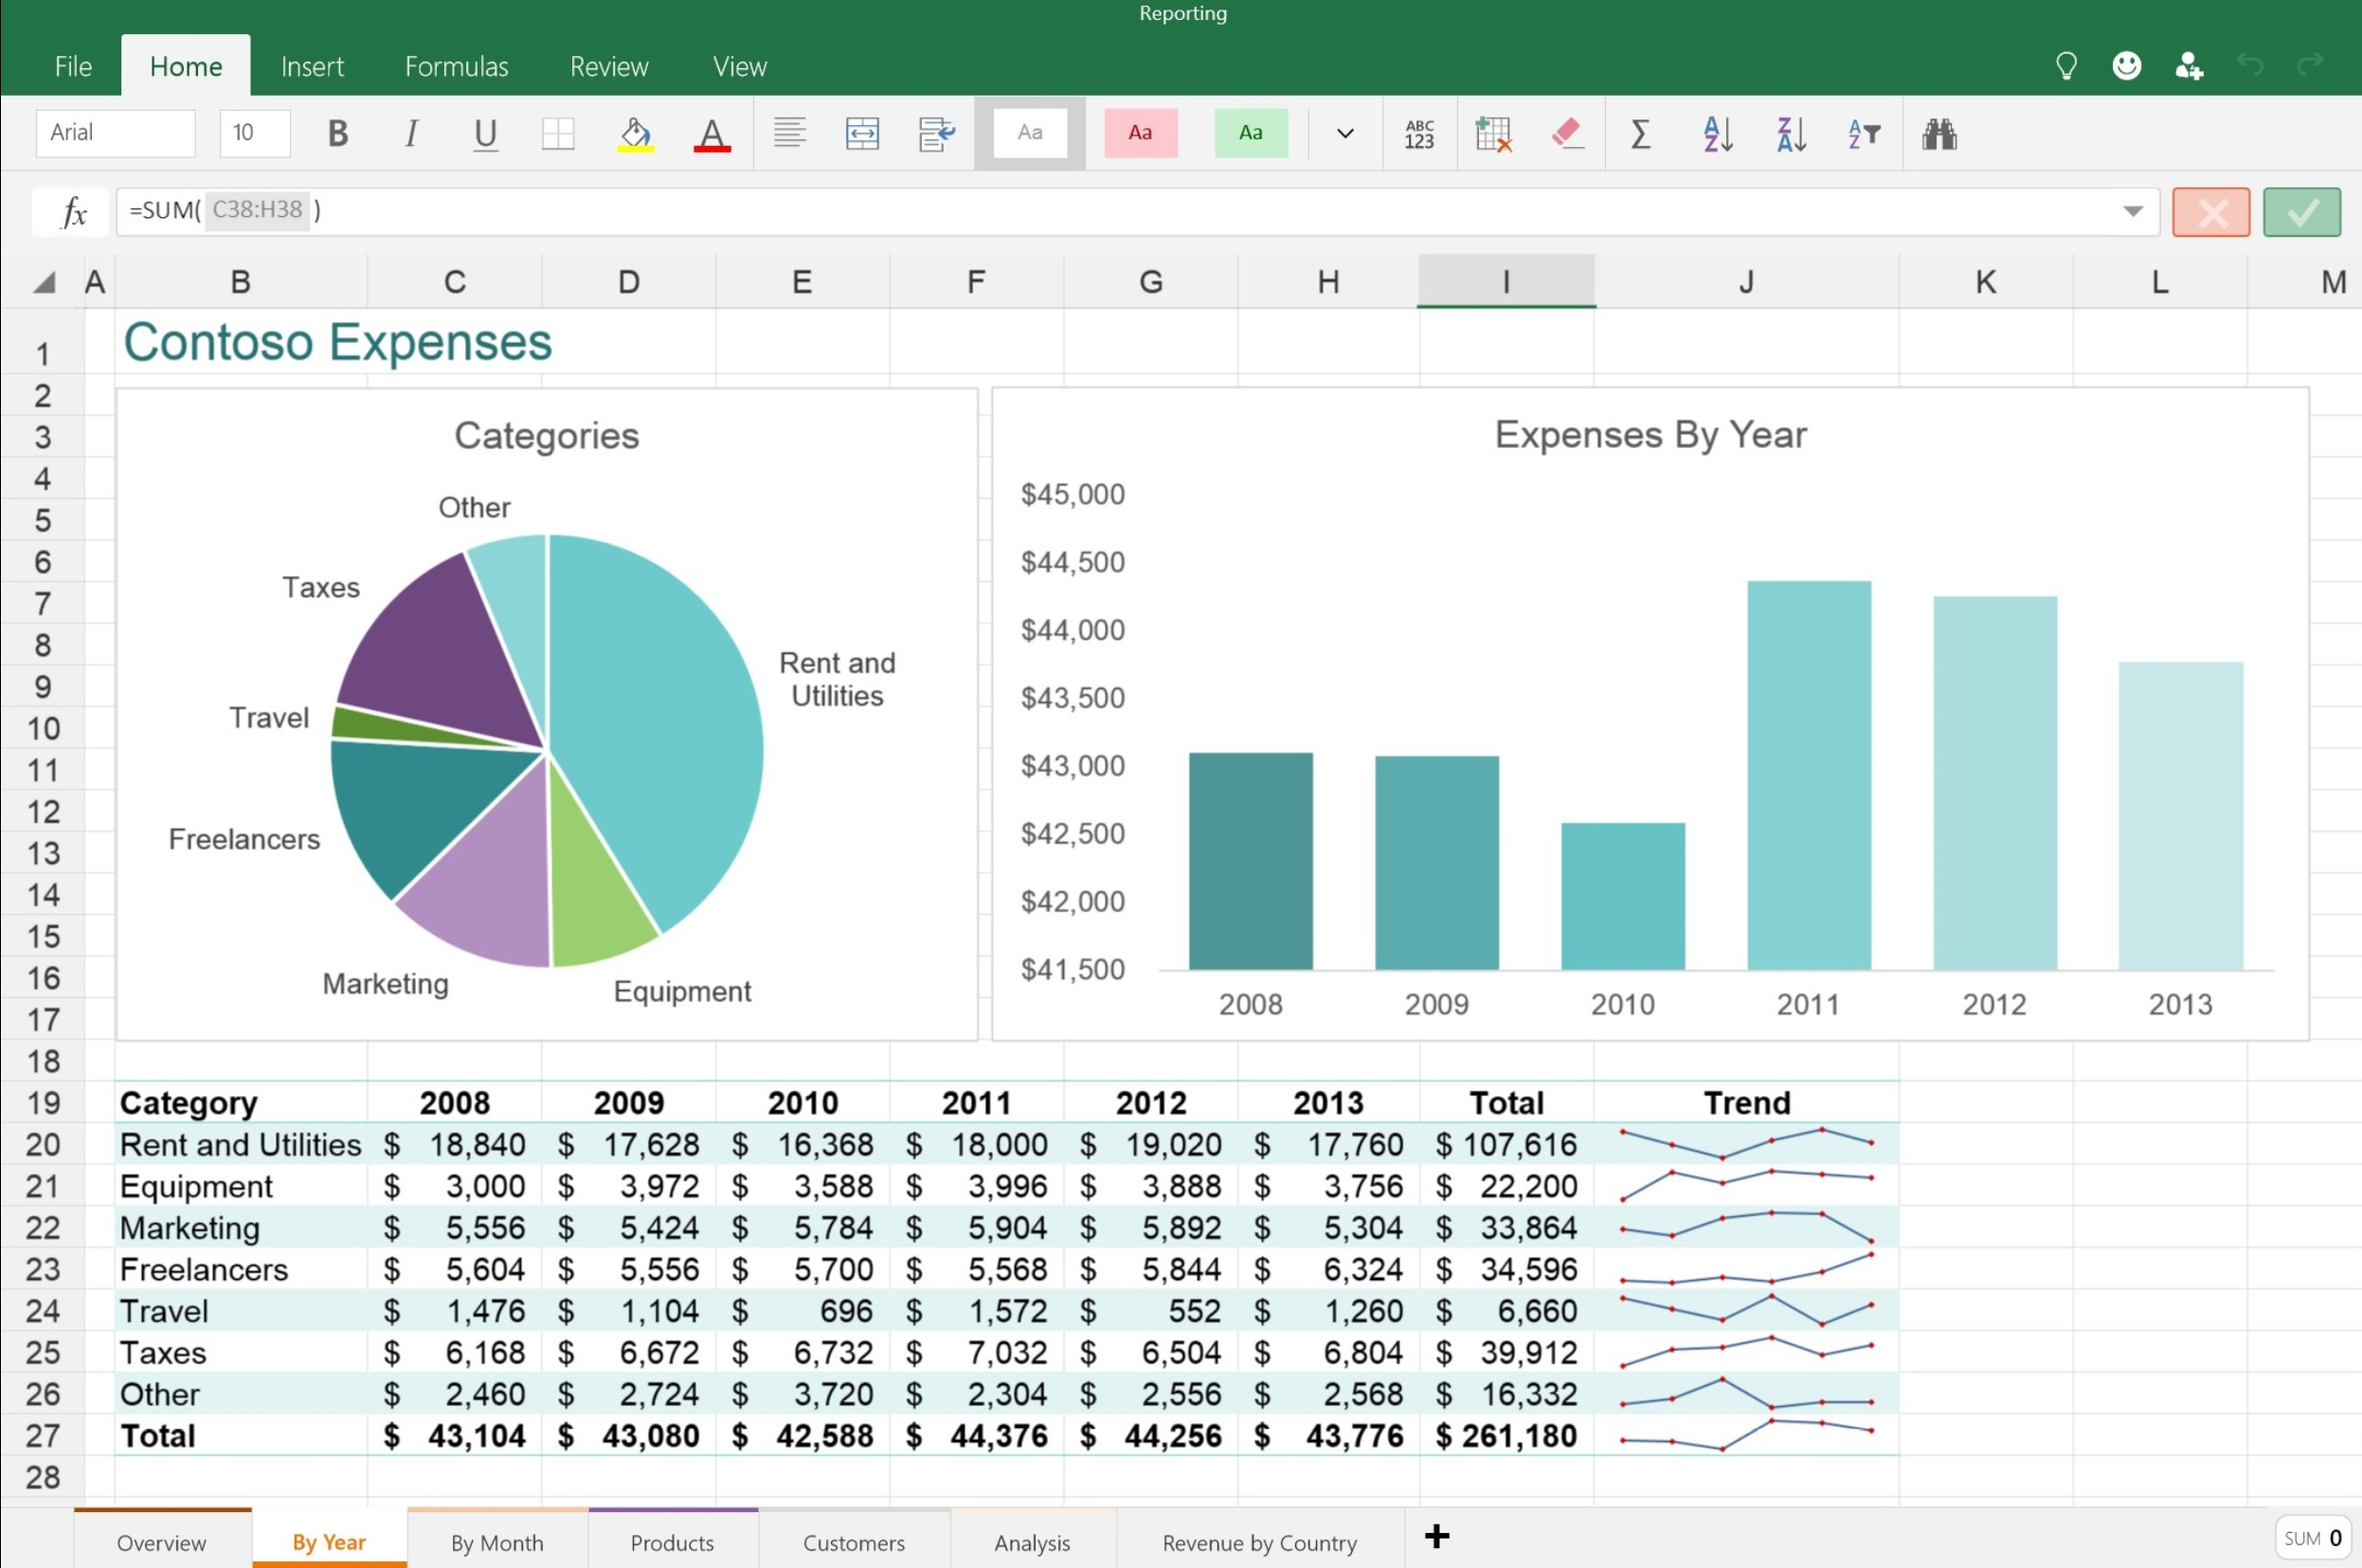 Ediblewildsus  Marvellous Features Available In The New Word Excel And Powerpoint Apps For  With Glamorous Excel Touch App  With Charming Find On Excel Also Shortcuts For Excel  In Addition Make A Chart On Excel And Excel Client Database Template As Well As Calculate Time Duration In Excel Additionally Draw A Graph In Excel From Mspowerusercom With Ediblewildsus  Glamorous Features Available In The New Word Excel And Powerpoint Apps For  With Charming Excel Touch App  And Marvellous Find On Excel Also Shortcuts For Excel  In Addition Make A Chart On Excel From Mspowerusercom